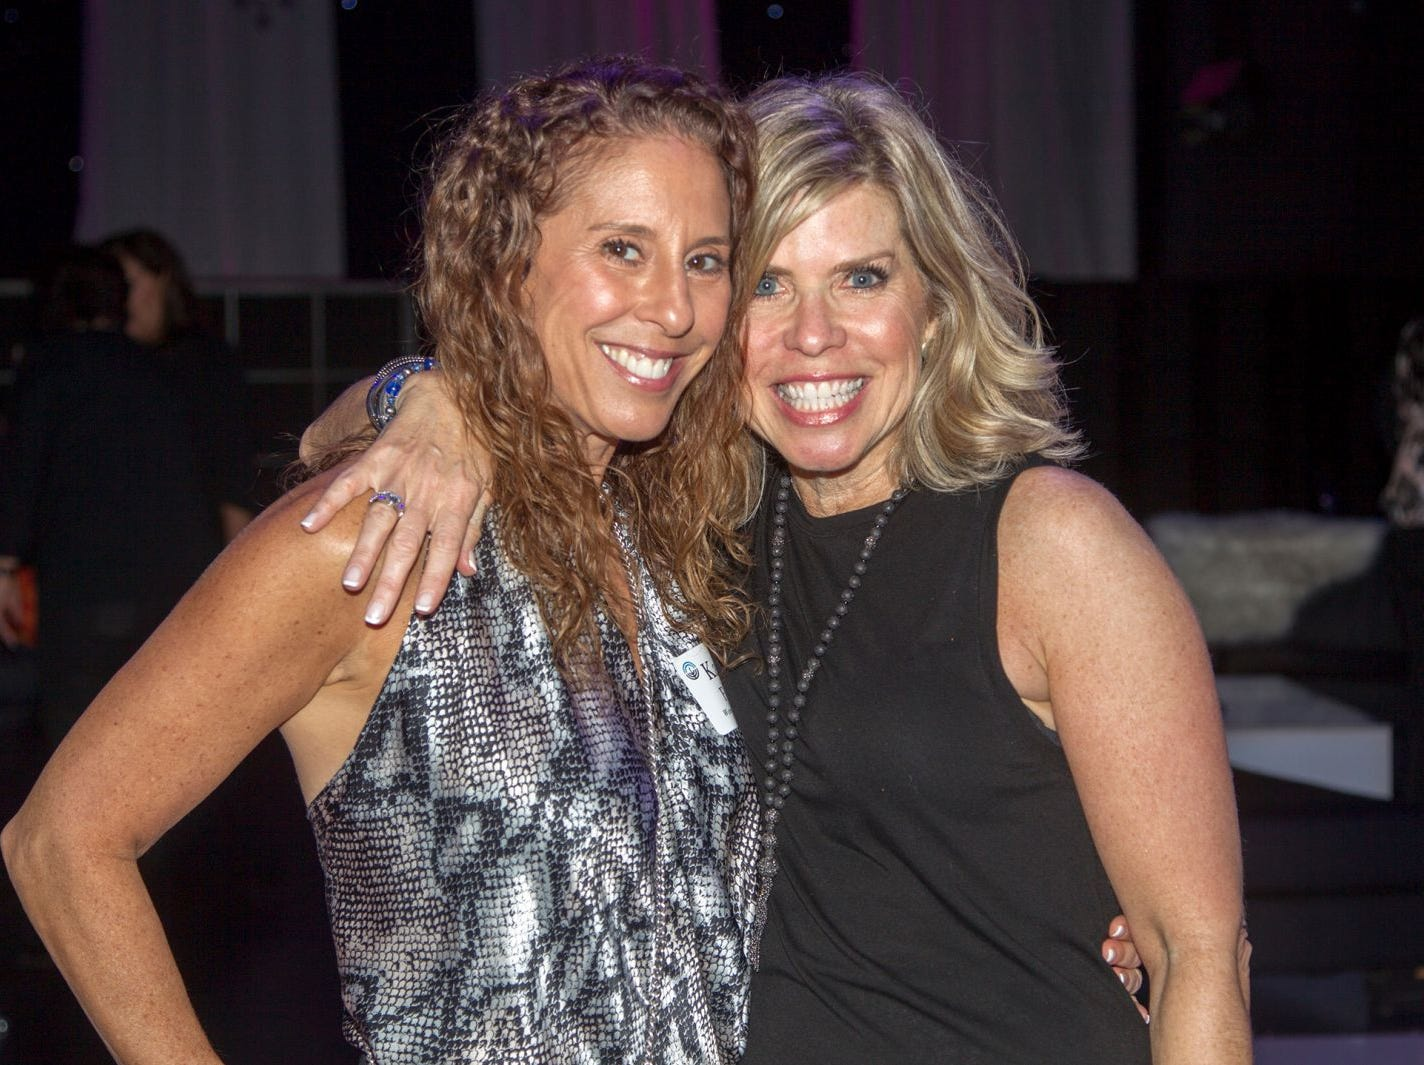 Kari Farber, Stacy Esser. Jewish Federation of Northern New Jersey held its first Girl's Night Out dance party at Space in Englewood. 01/24/2019